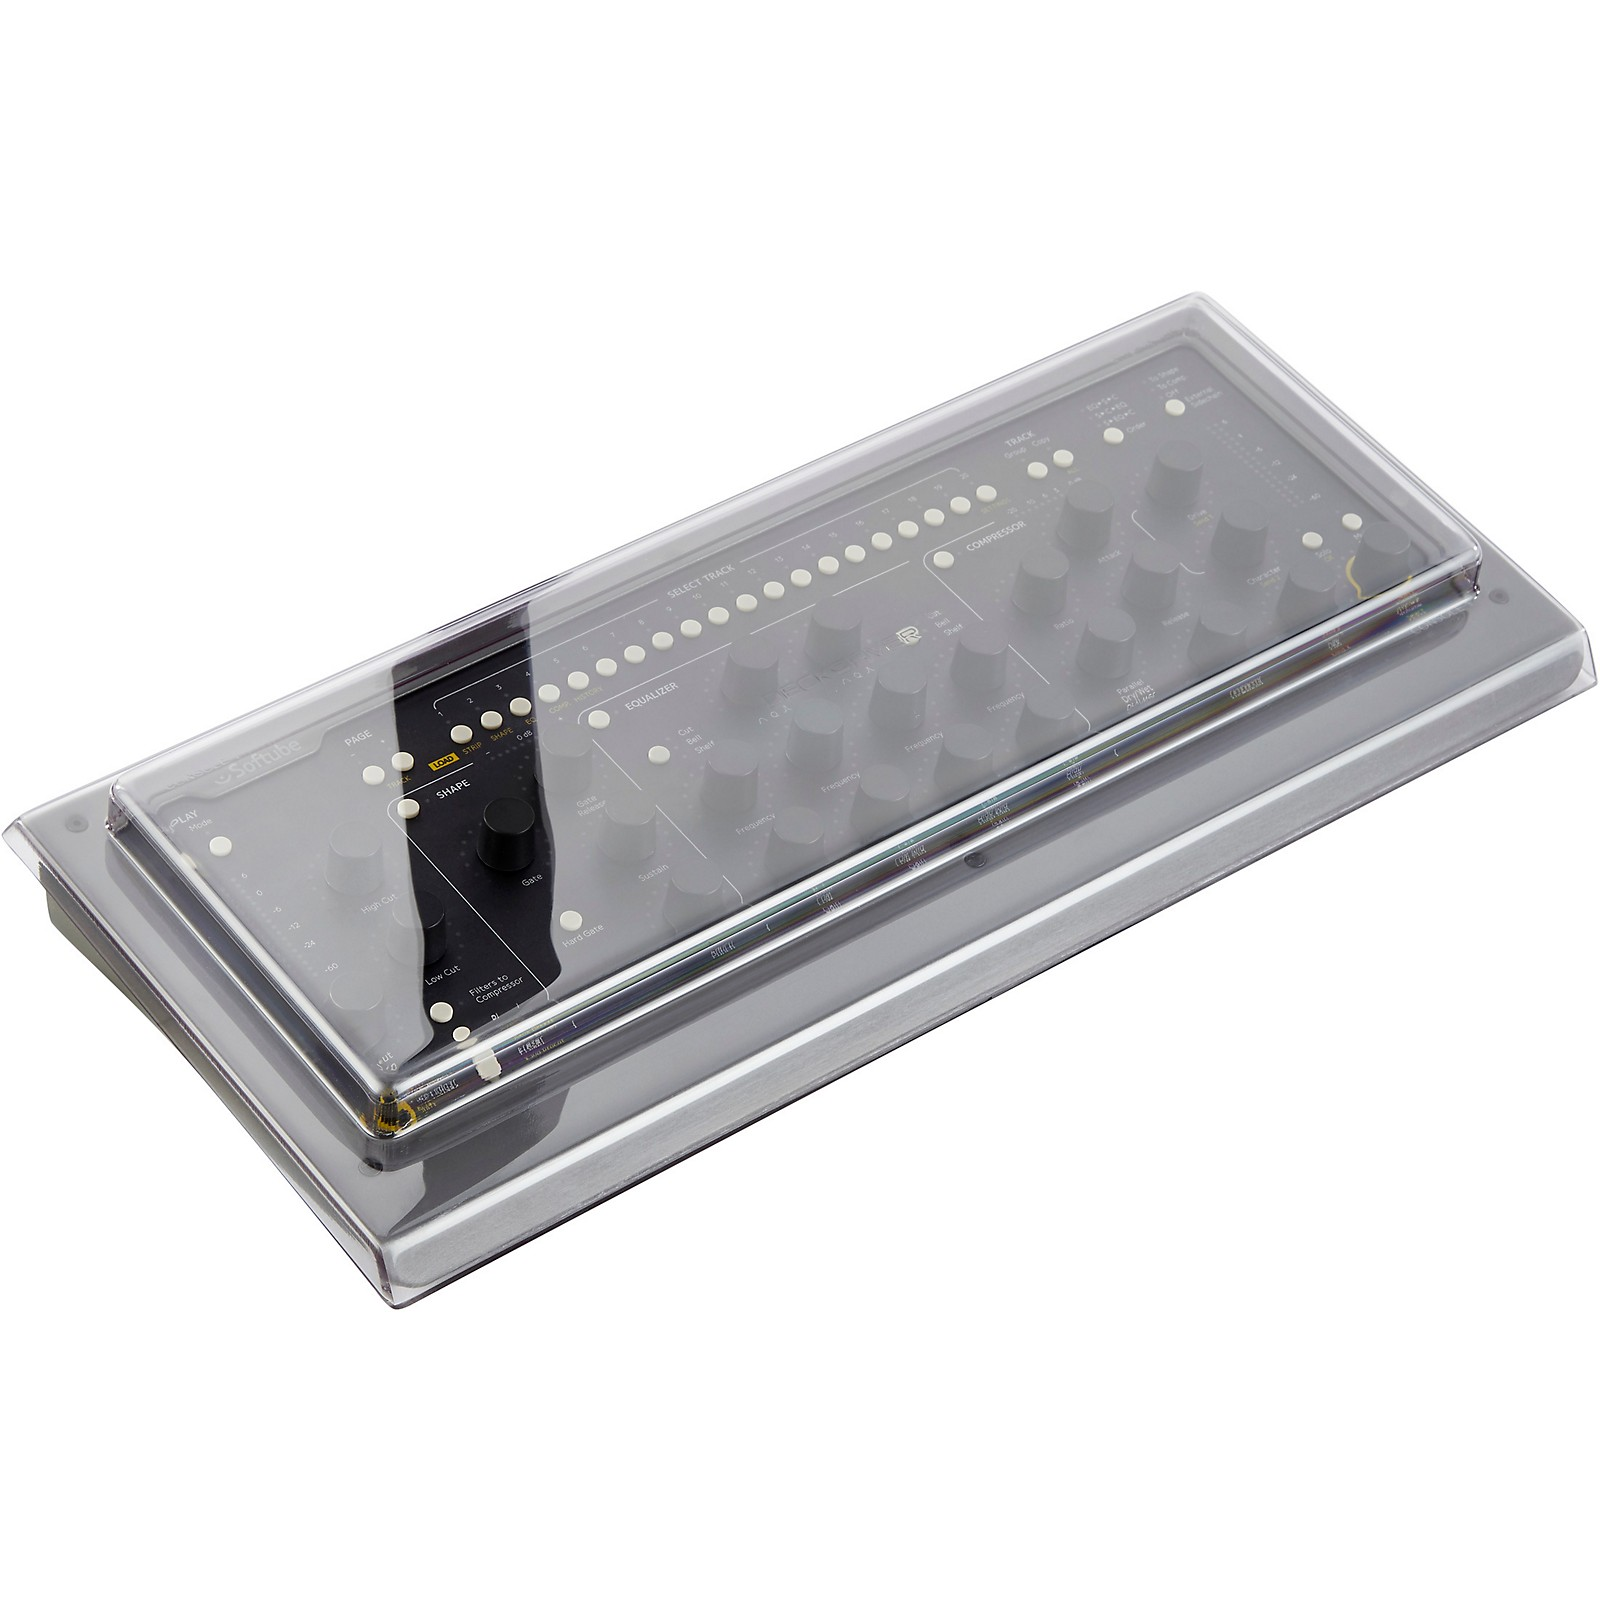 Decksaver DS-PC-CONSOLE1 SOFTUBE CONSOLE 1 COVER